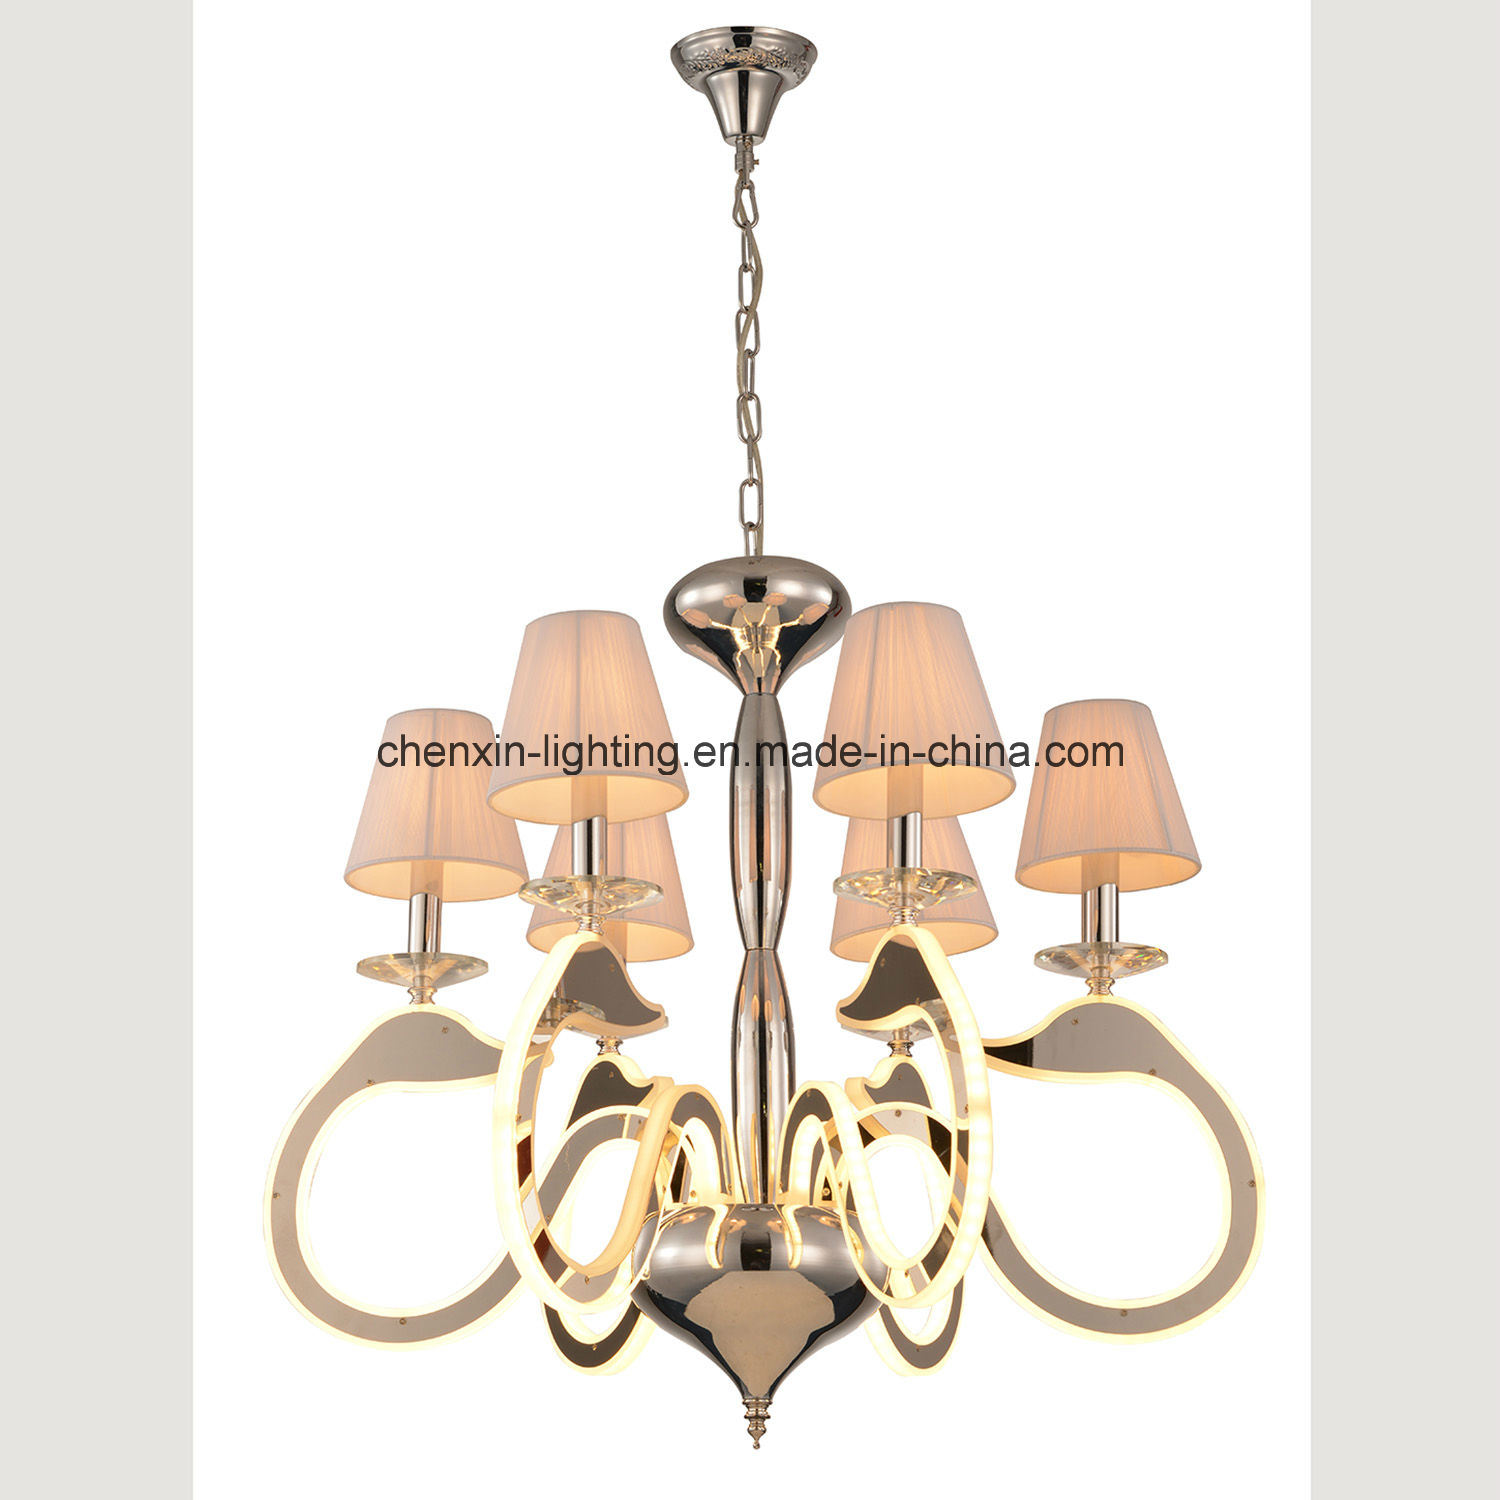 New Decoration Projection Swan Acrylic Chandelier/Hanging Light